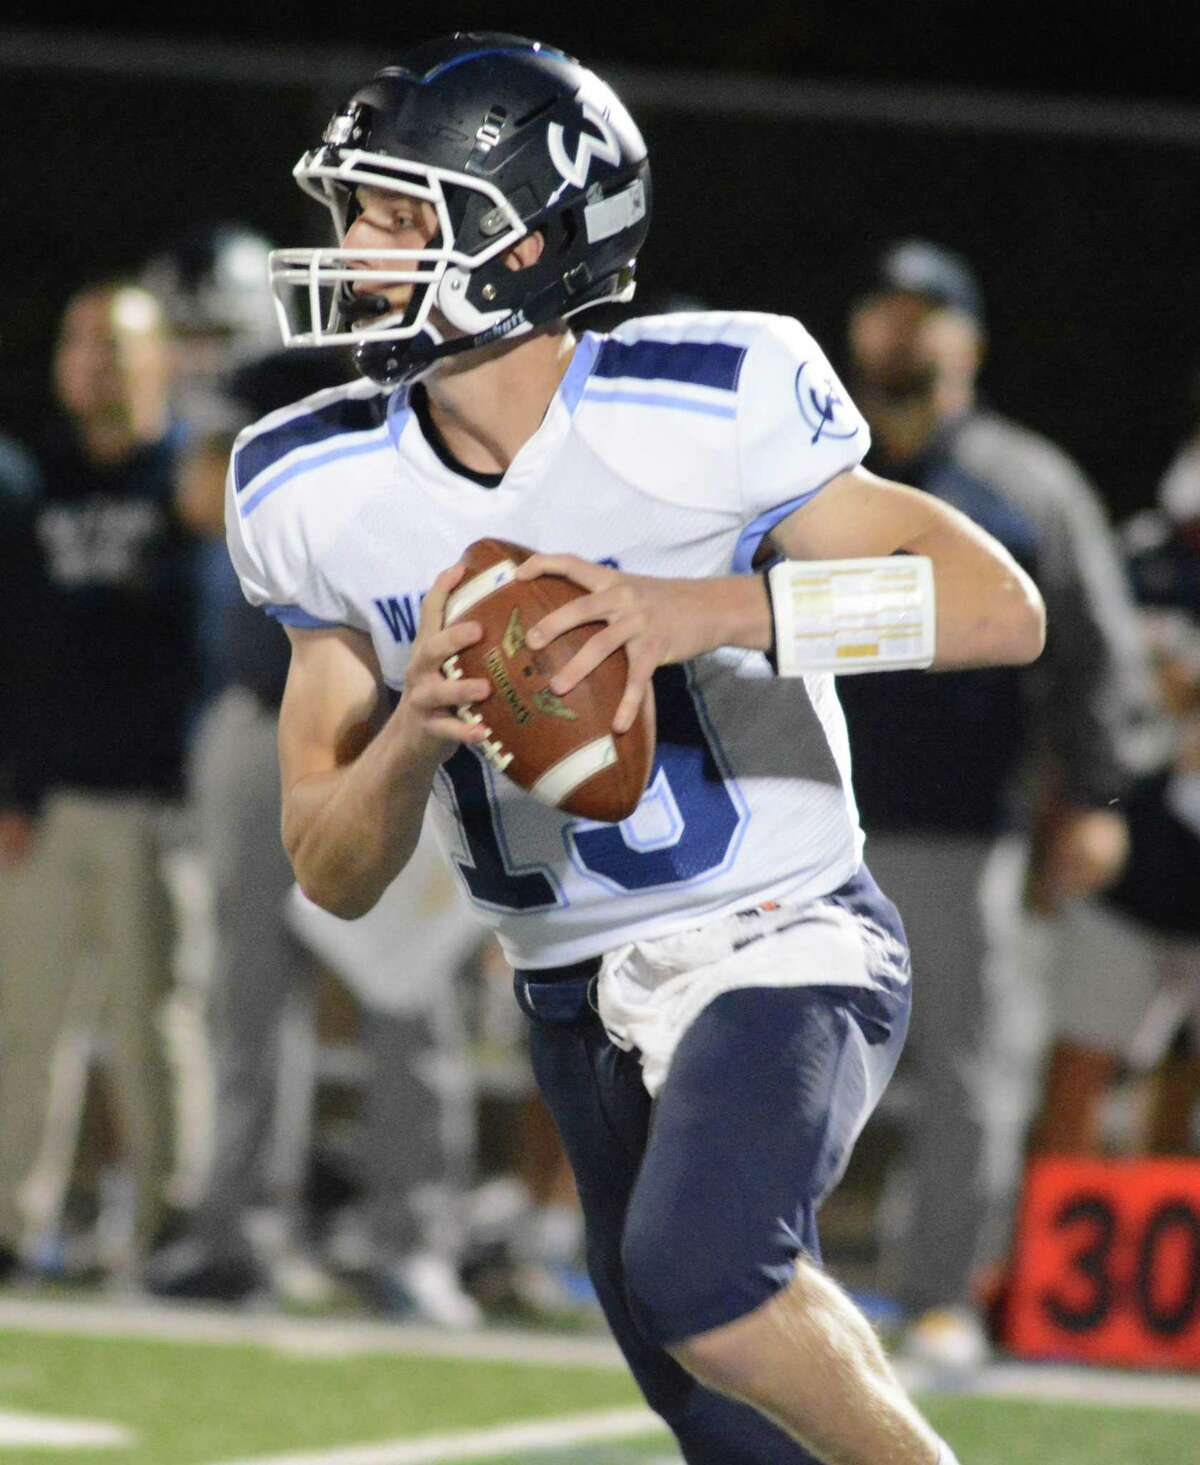 Wilton quarterback Grant Masterson looks to pass during a football game Friday night.